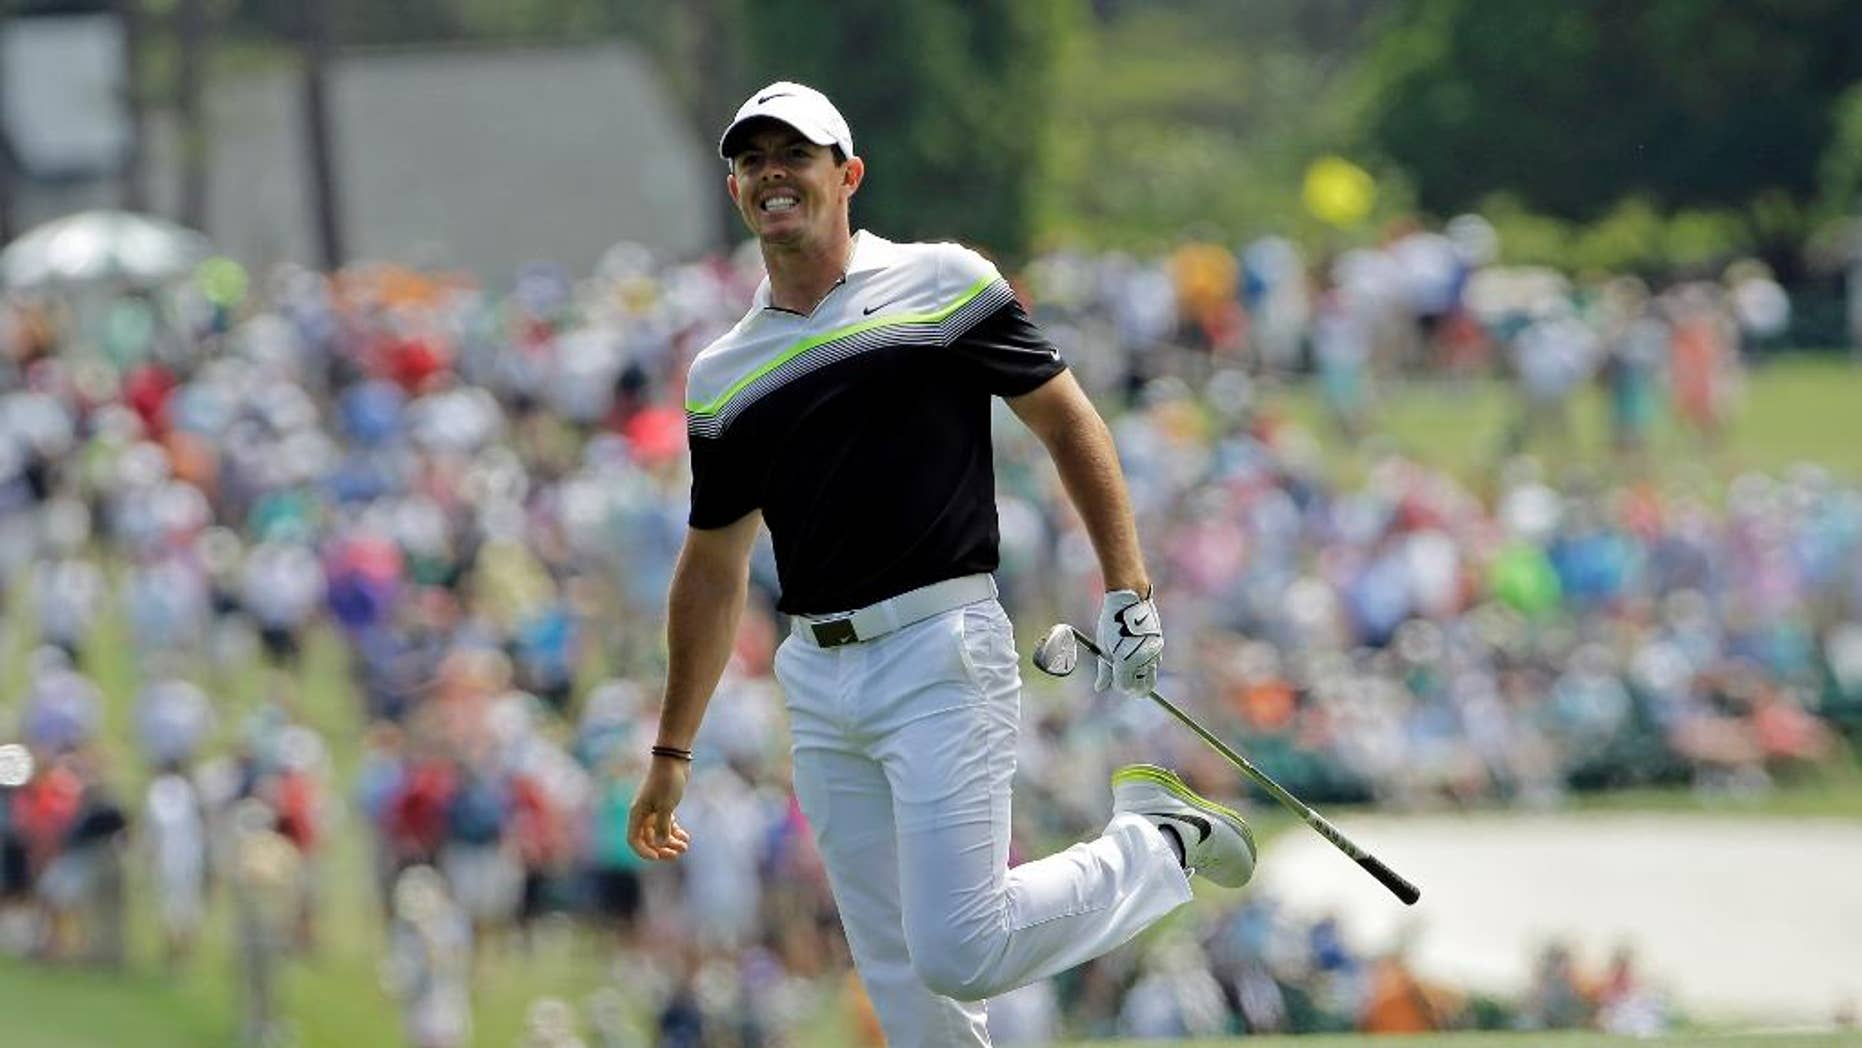 Rory McIlroy, of Northern Ireland, watches his shot after hitting on the first fairway during the third round of the Masters golf tournament Saturday, April 11, 2015, in Augusta, Ga. (AP Photo/David J. Phillip)